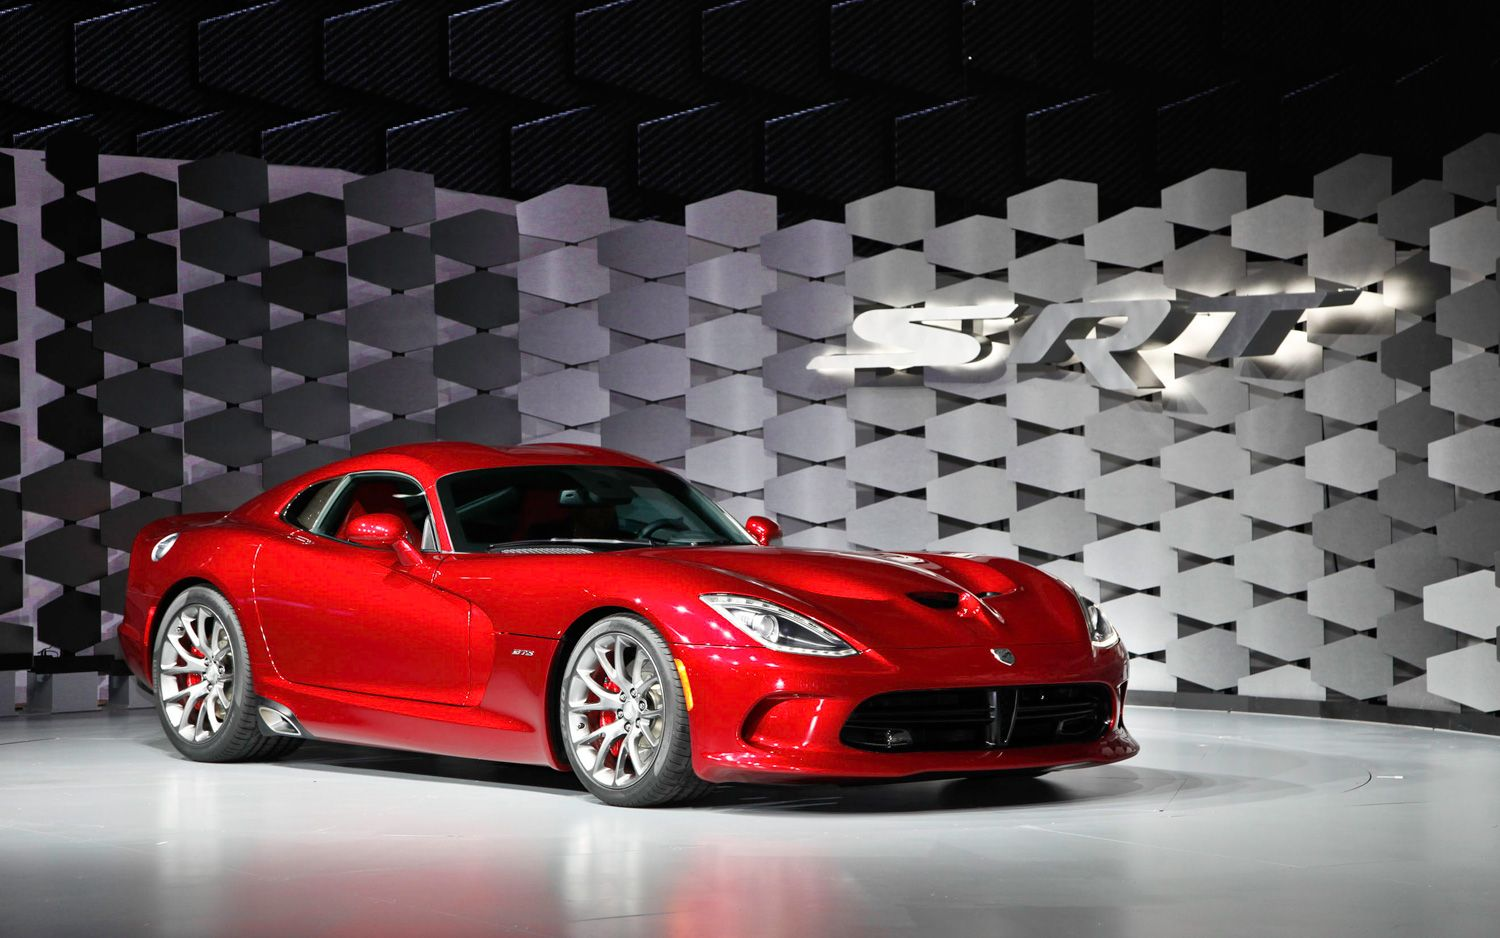 2013 SRT Viper Front Three Quarters 31